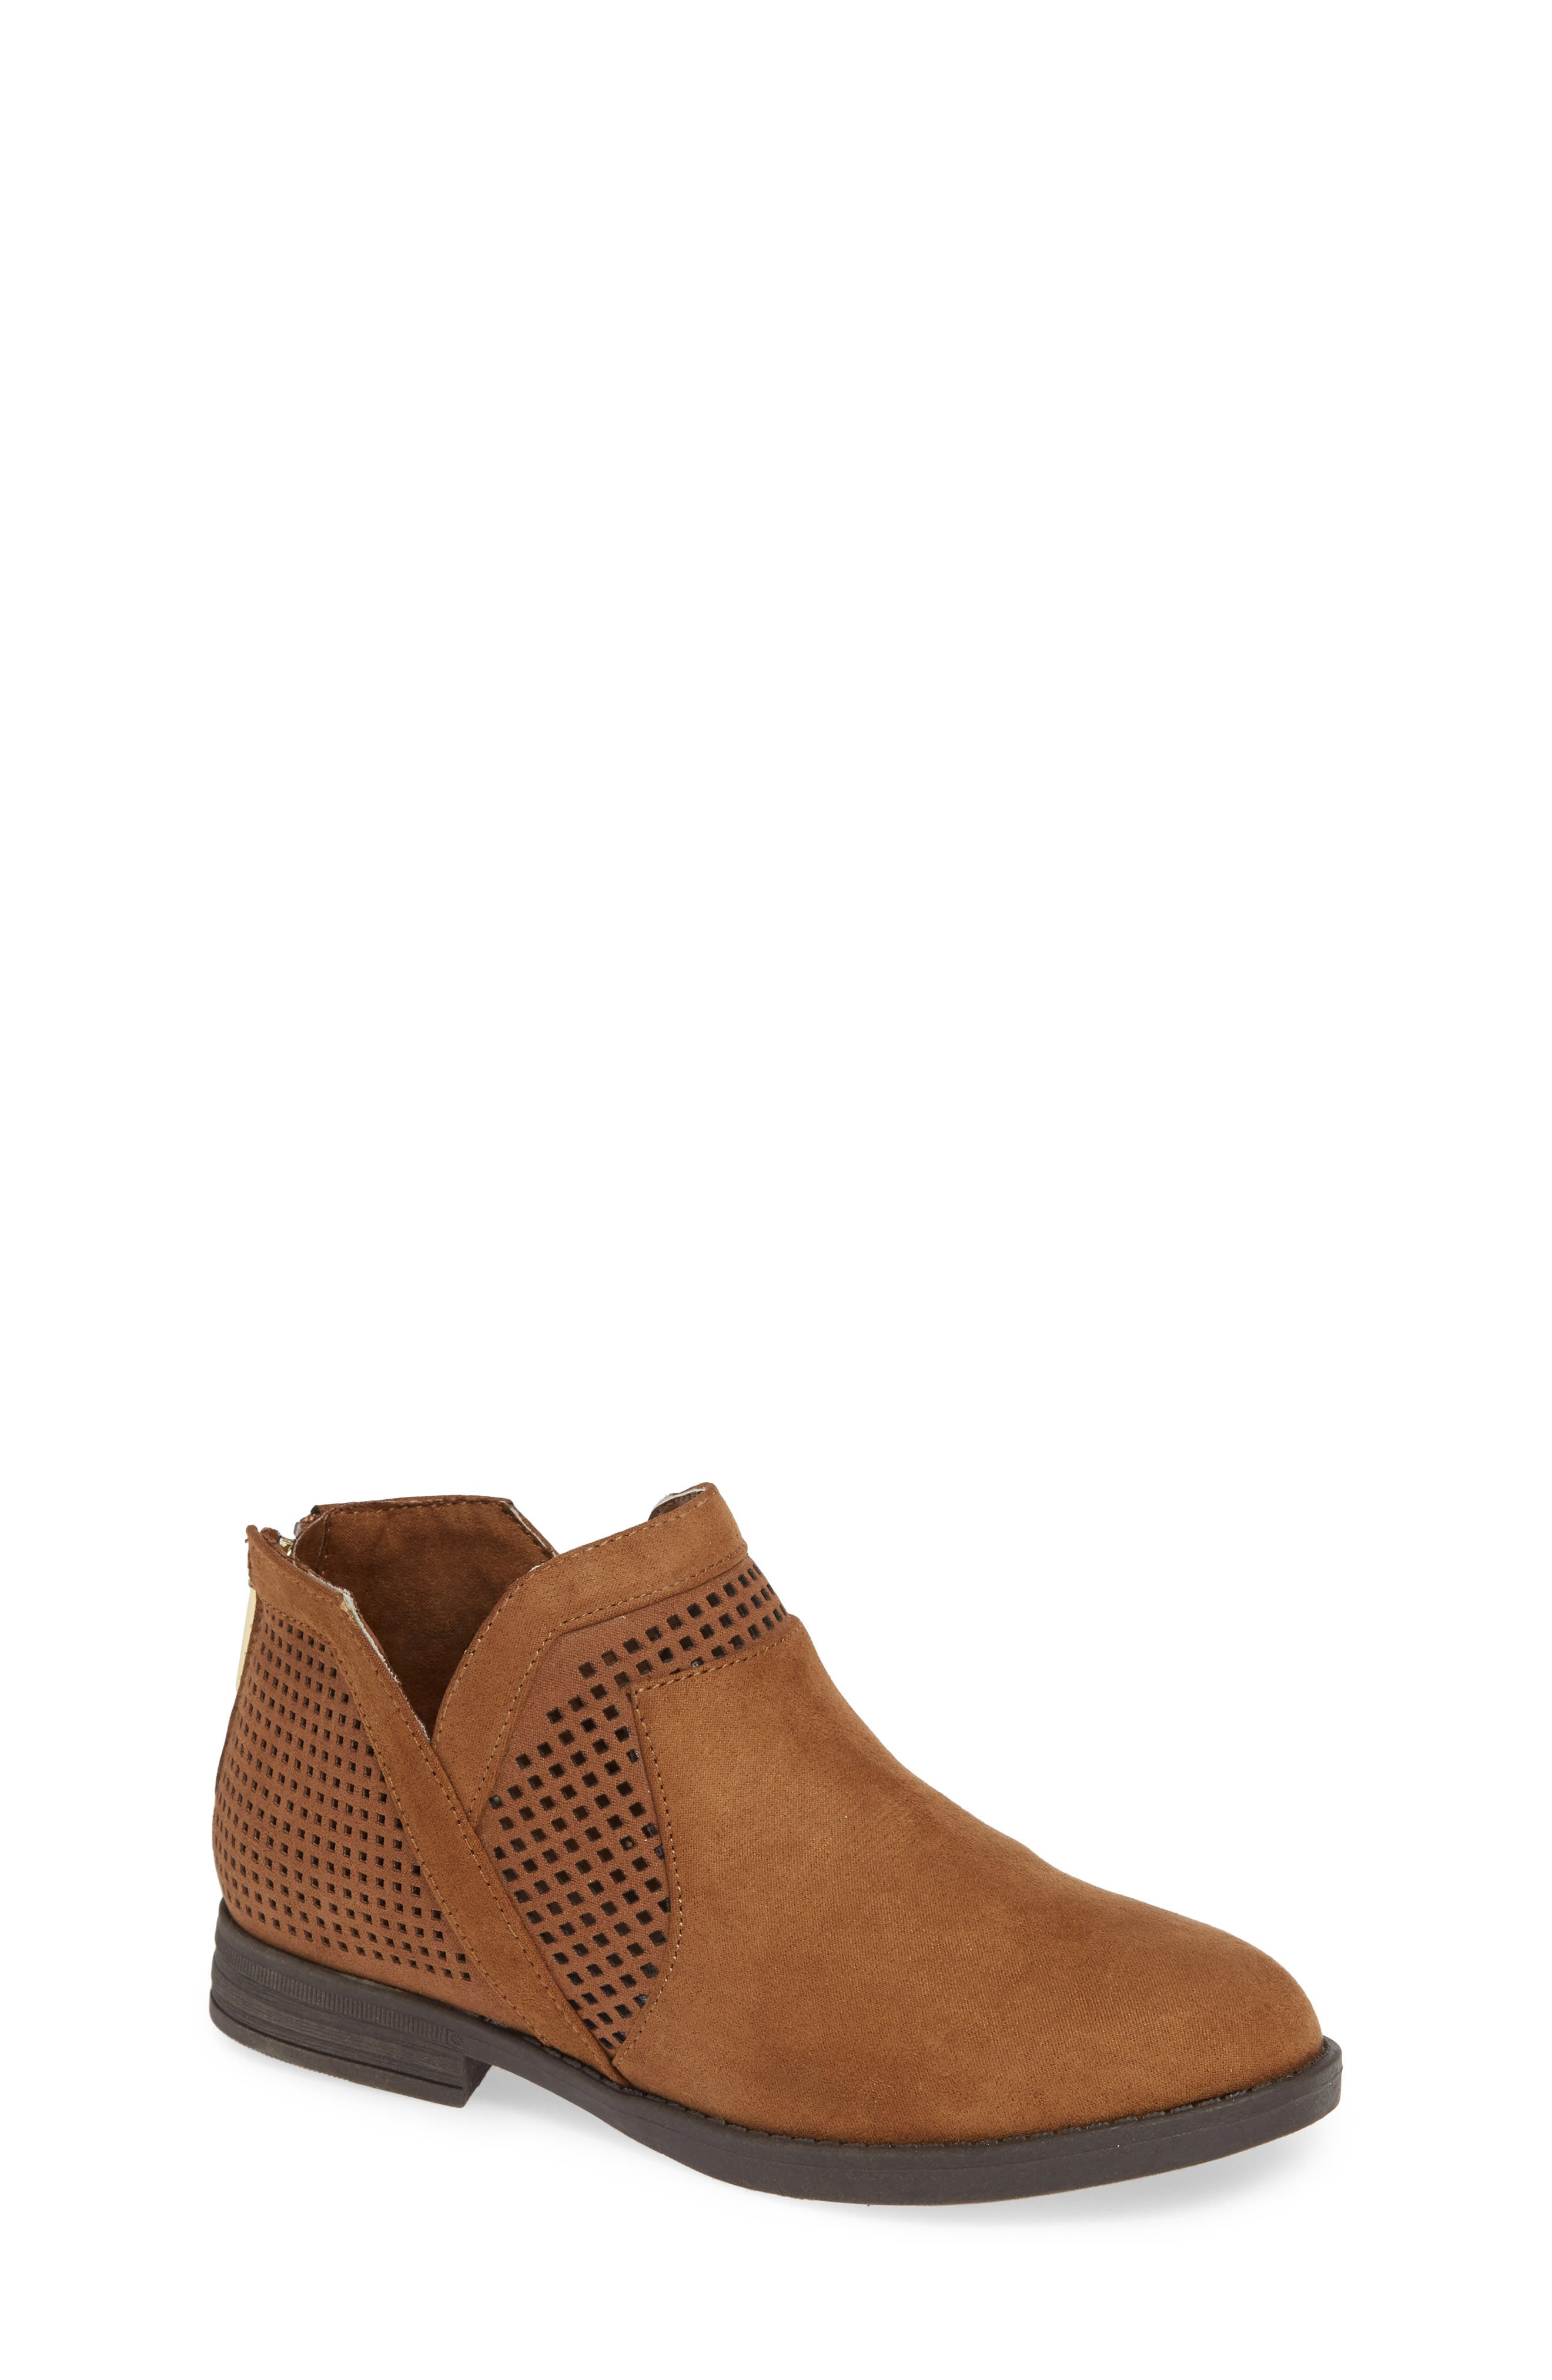 Wild Westy Perforated Bootie, Main, color, 206